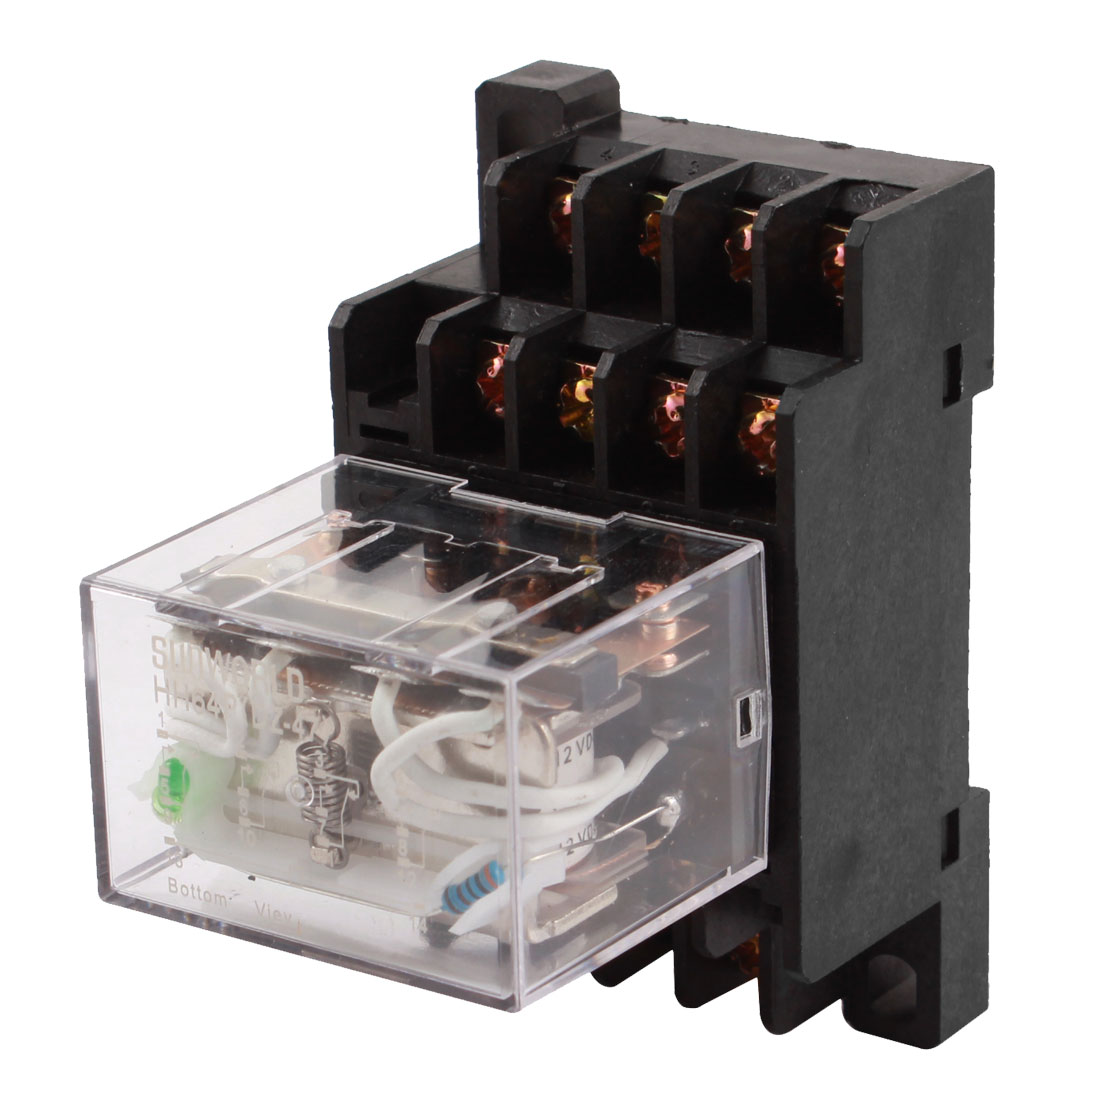 HH64P DC 12V Coil Voltage 14 Terminals 3PDT Green LED Pilot Lamp 35mm DIN Rail Mount Power Electromagnetic Relay w Socket